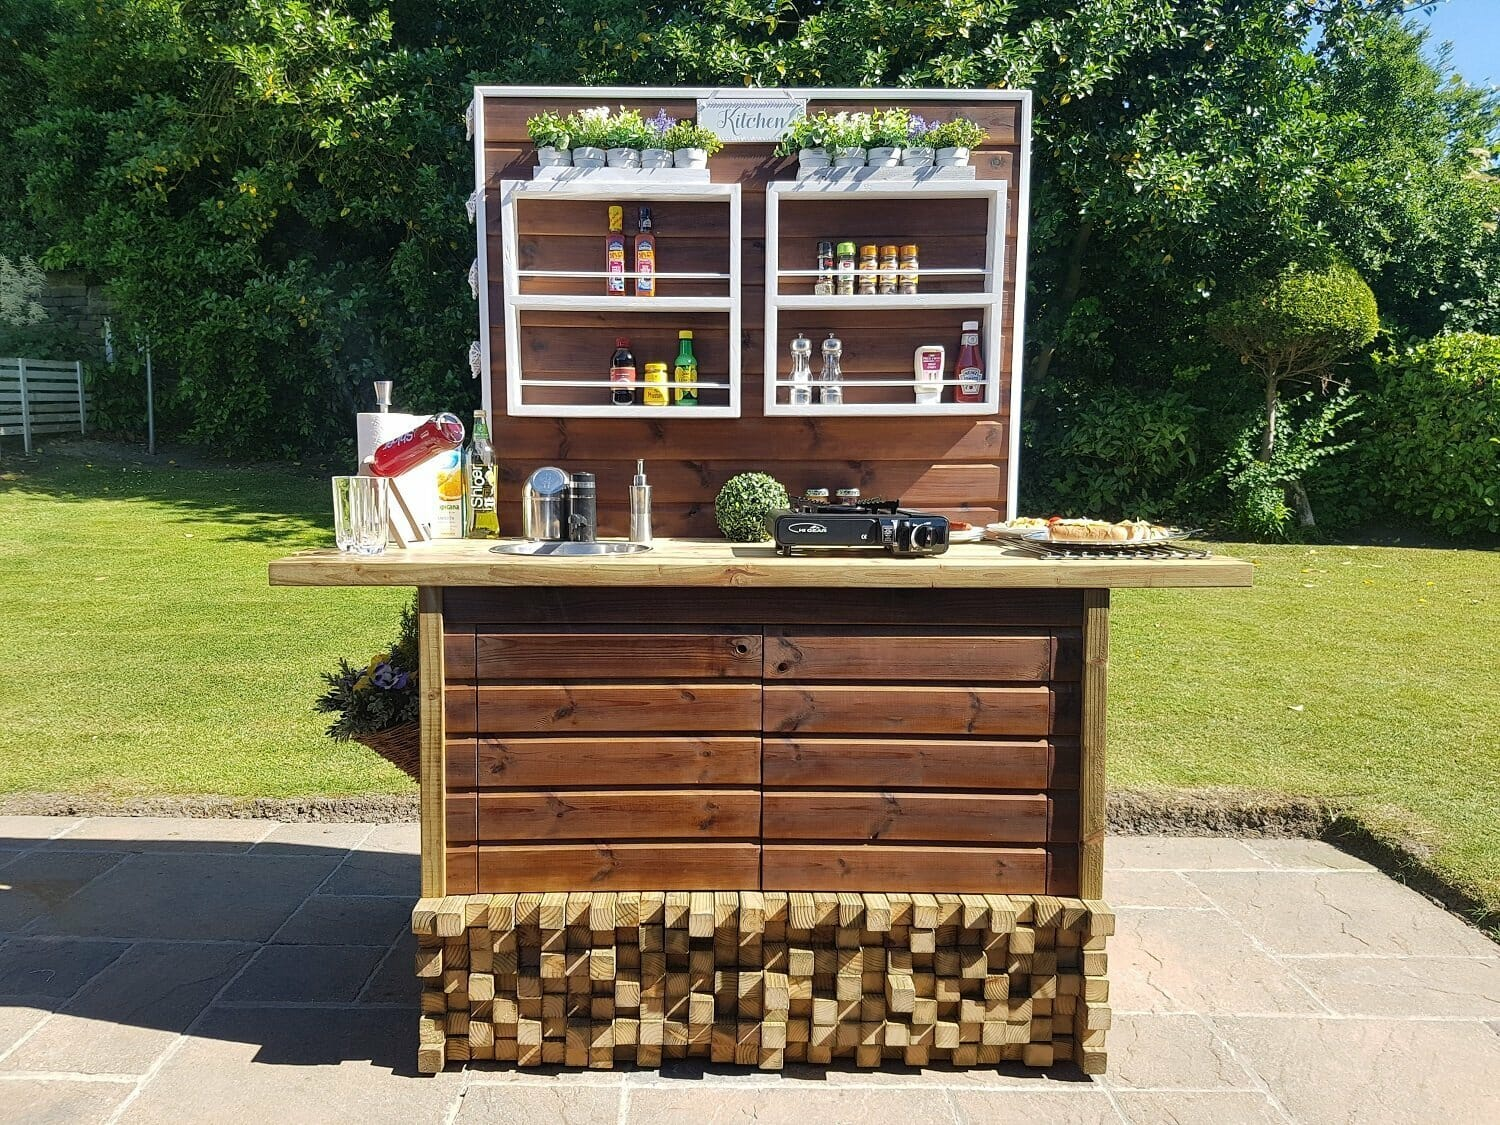 Outdoor Kitchen -- create your own with Gorilla Glue